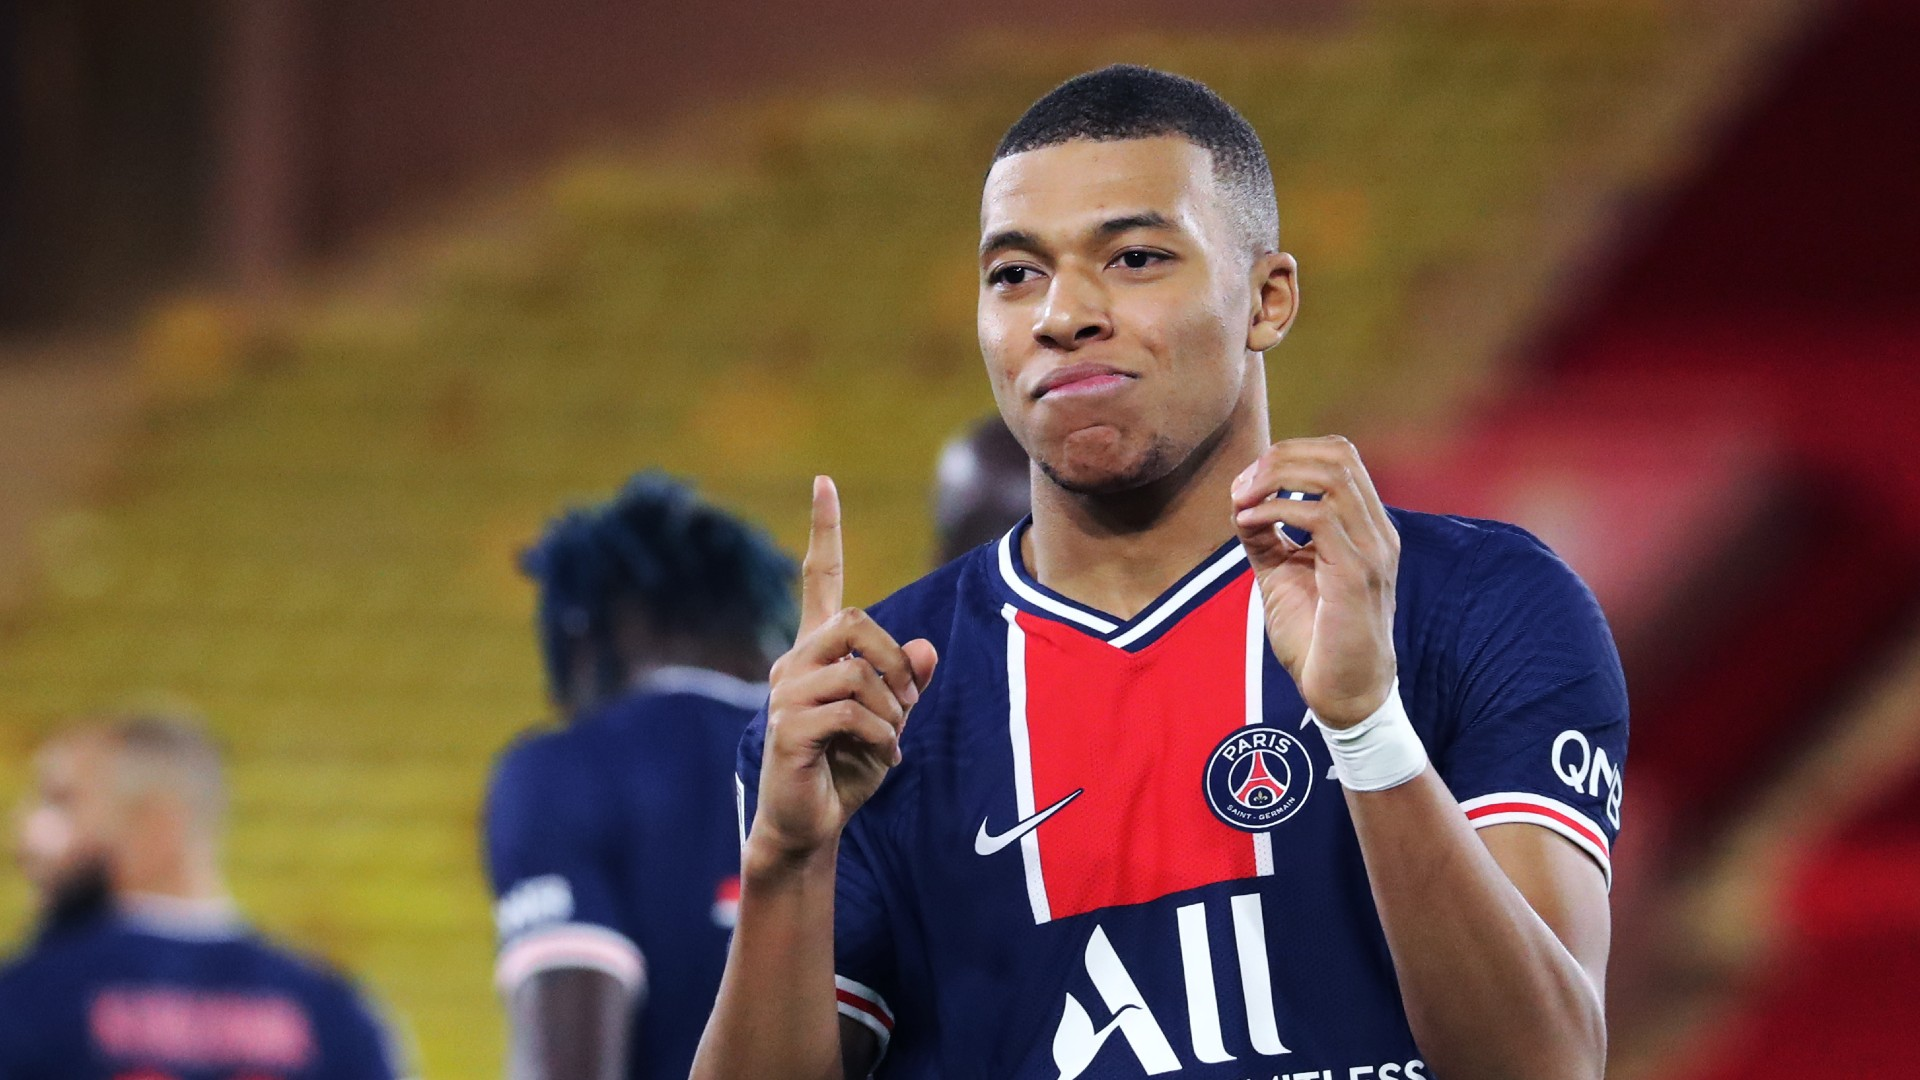 Mbappe Reaches 100 Goals For PSG With Strike Against